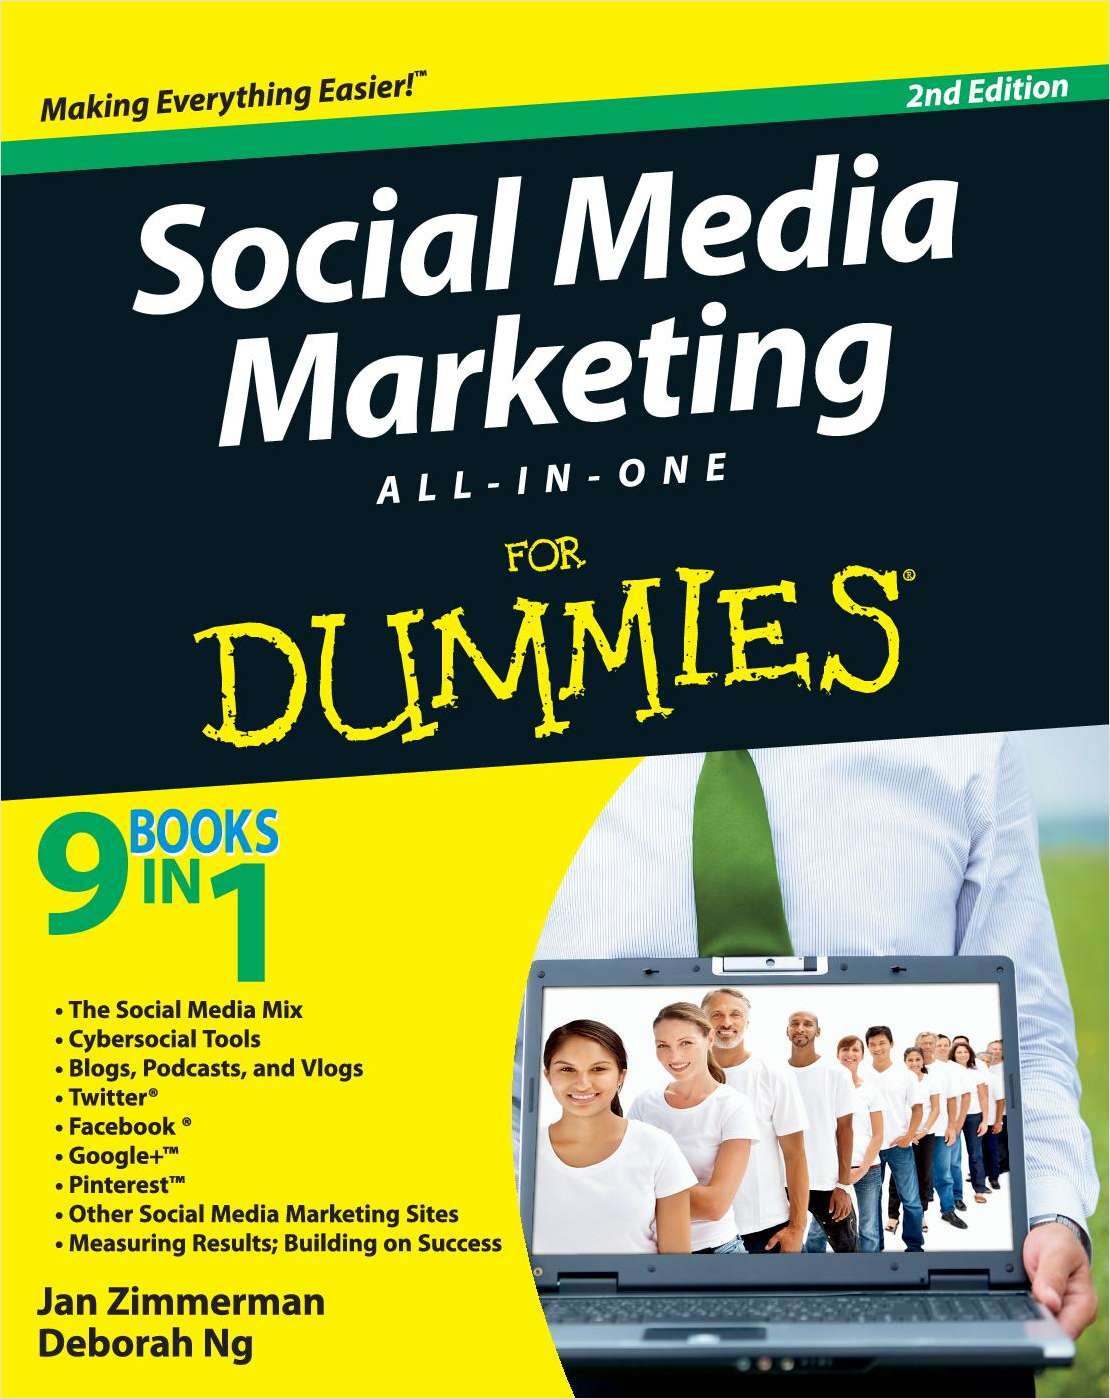 Social Media Marketing All-in-One For Dummies, 2nd Edition -- Sample Chapter